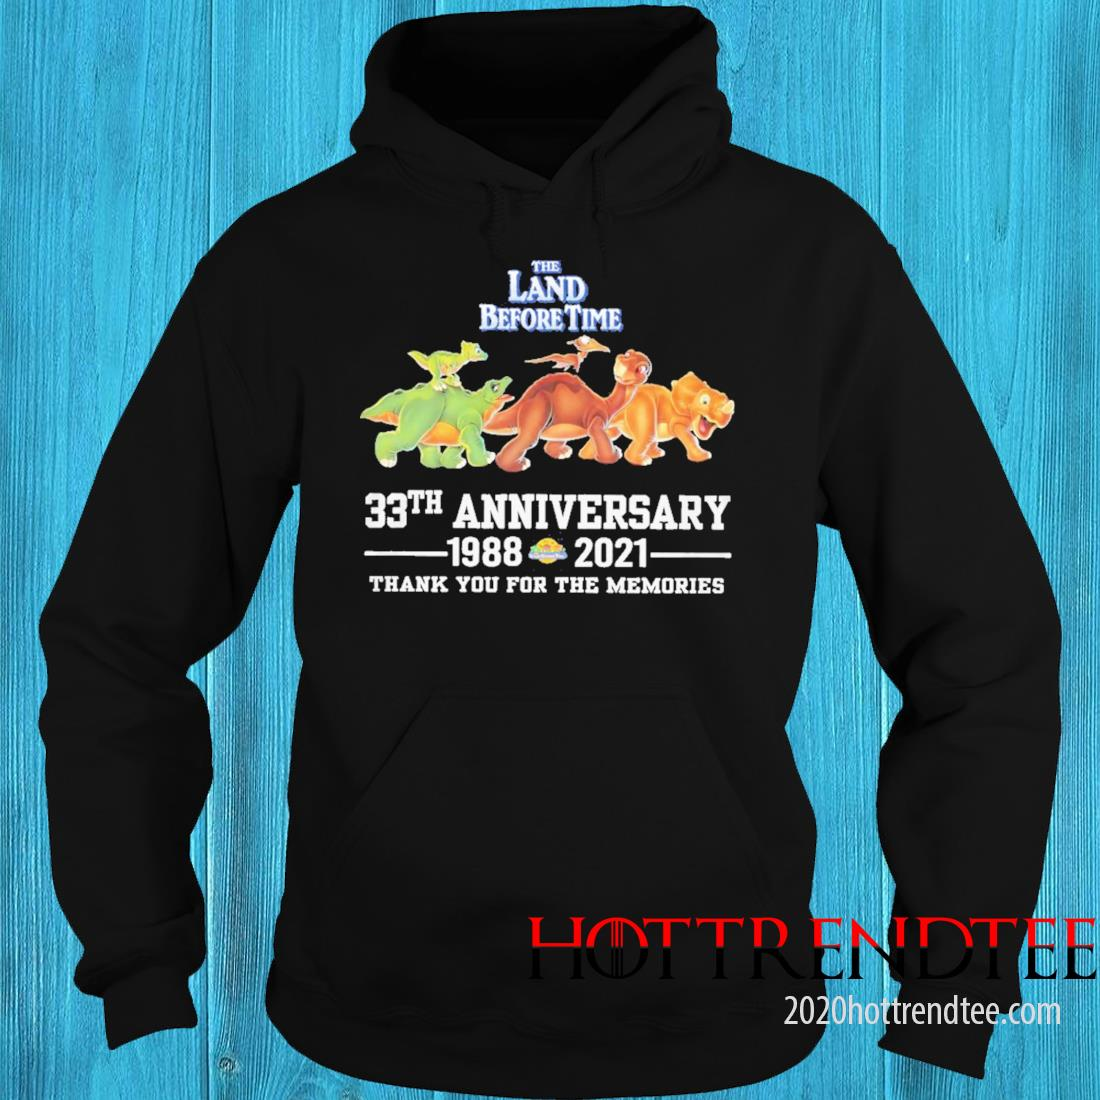 The Land Before Time 33th Anniversary 1988 2021 Thank You For The Memories Shirt hoodie